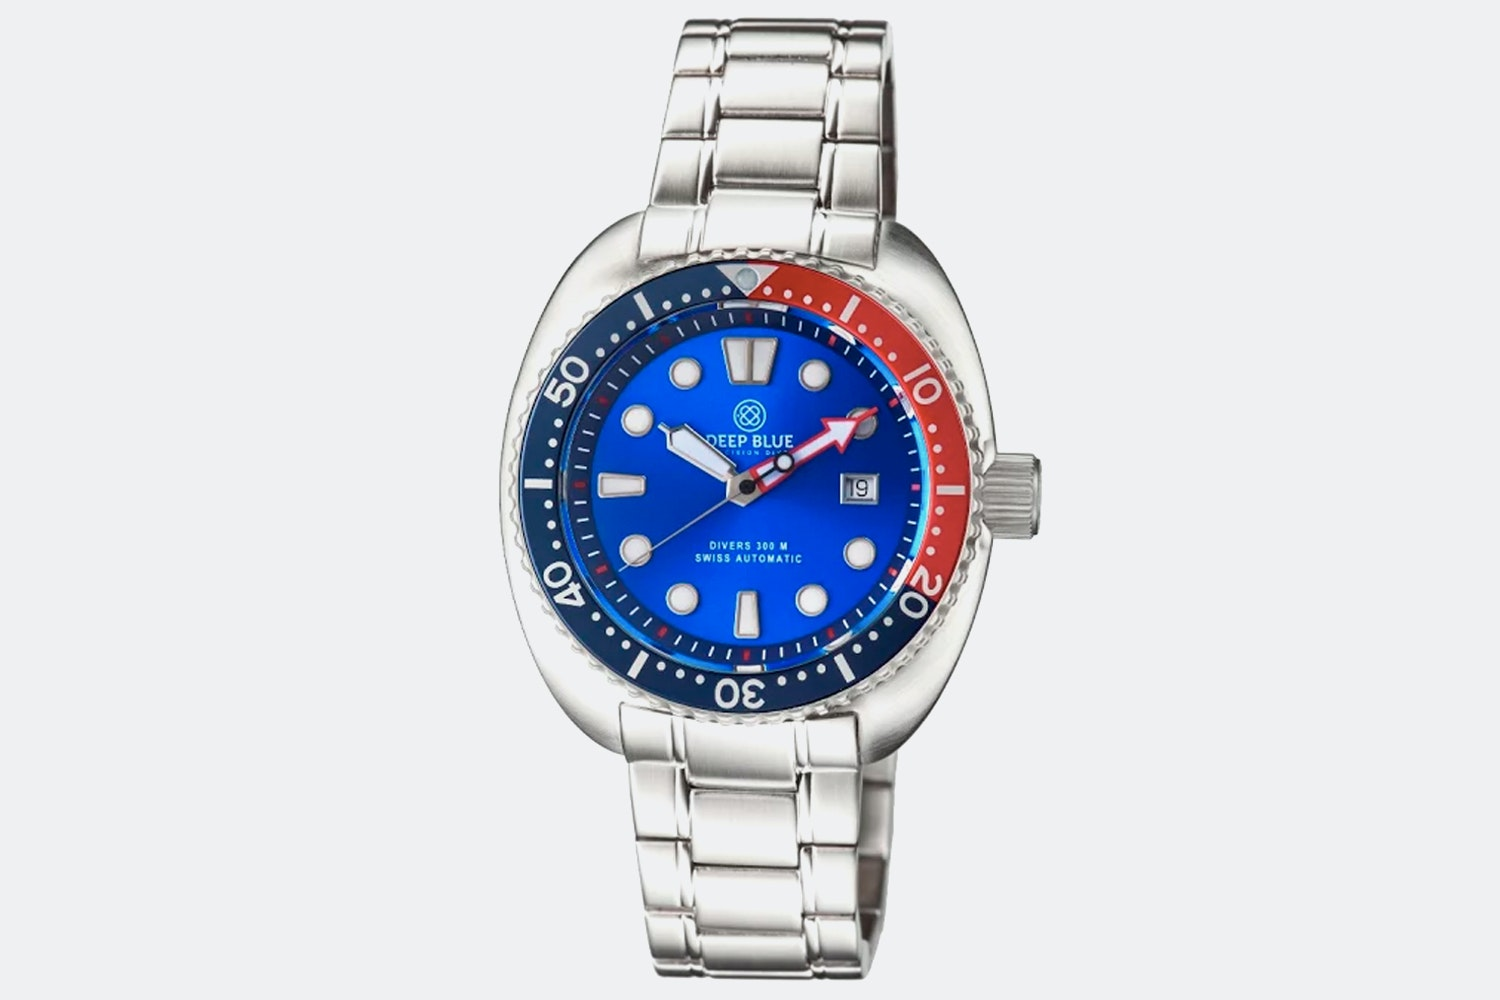 Stainless Steel Case, Blue Dial, Blue & Red Bezel